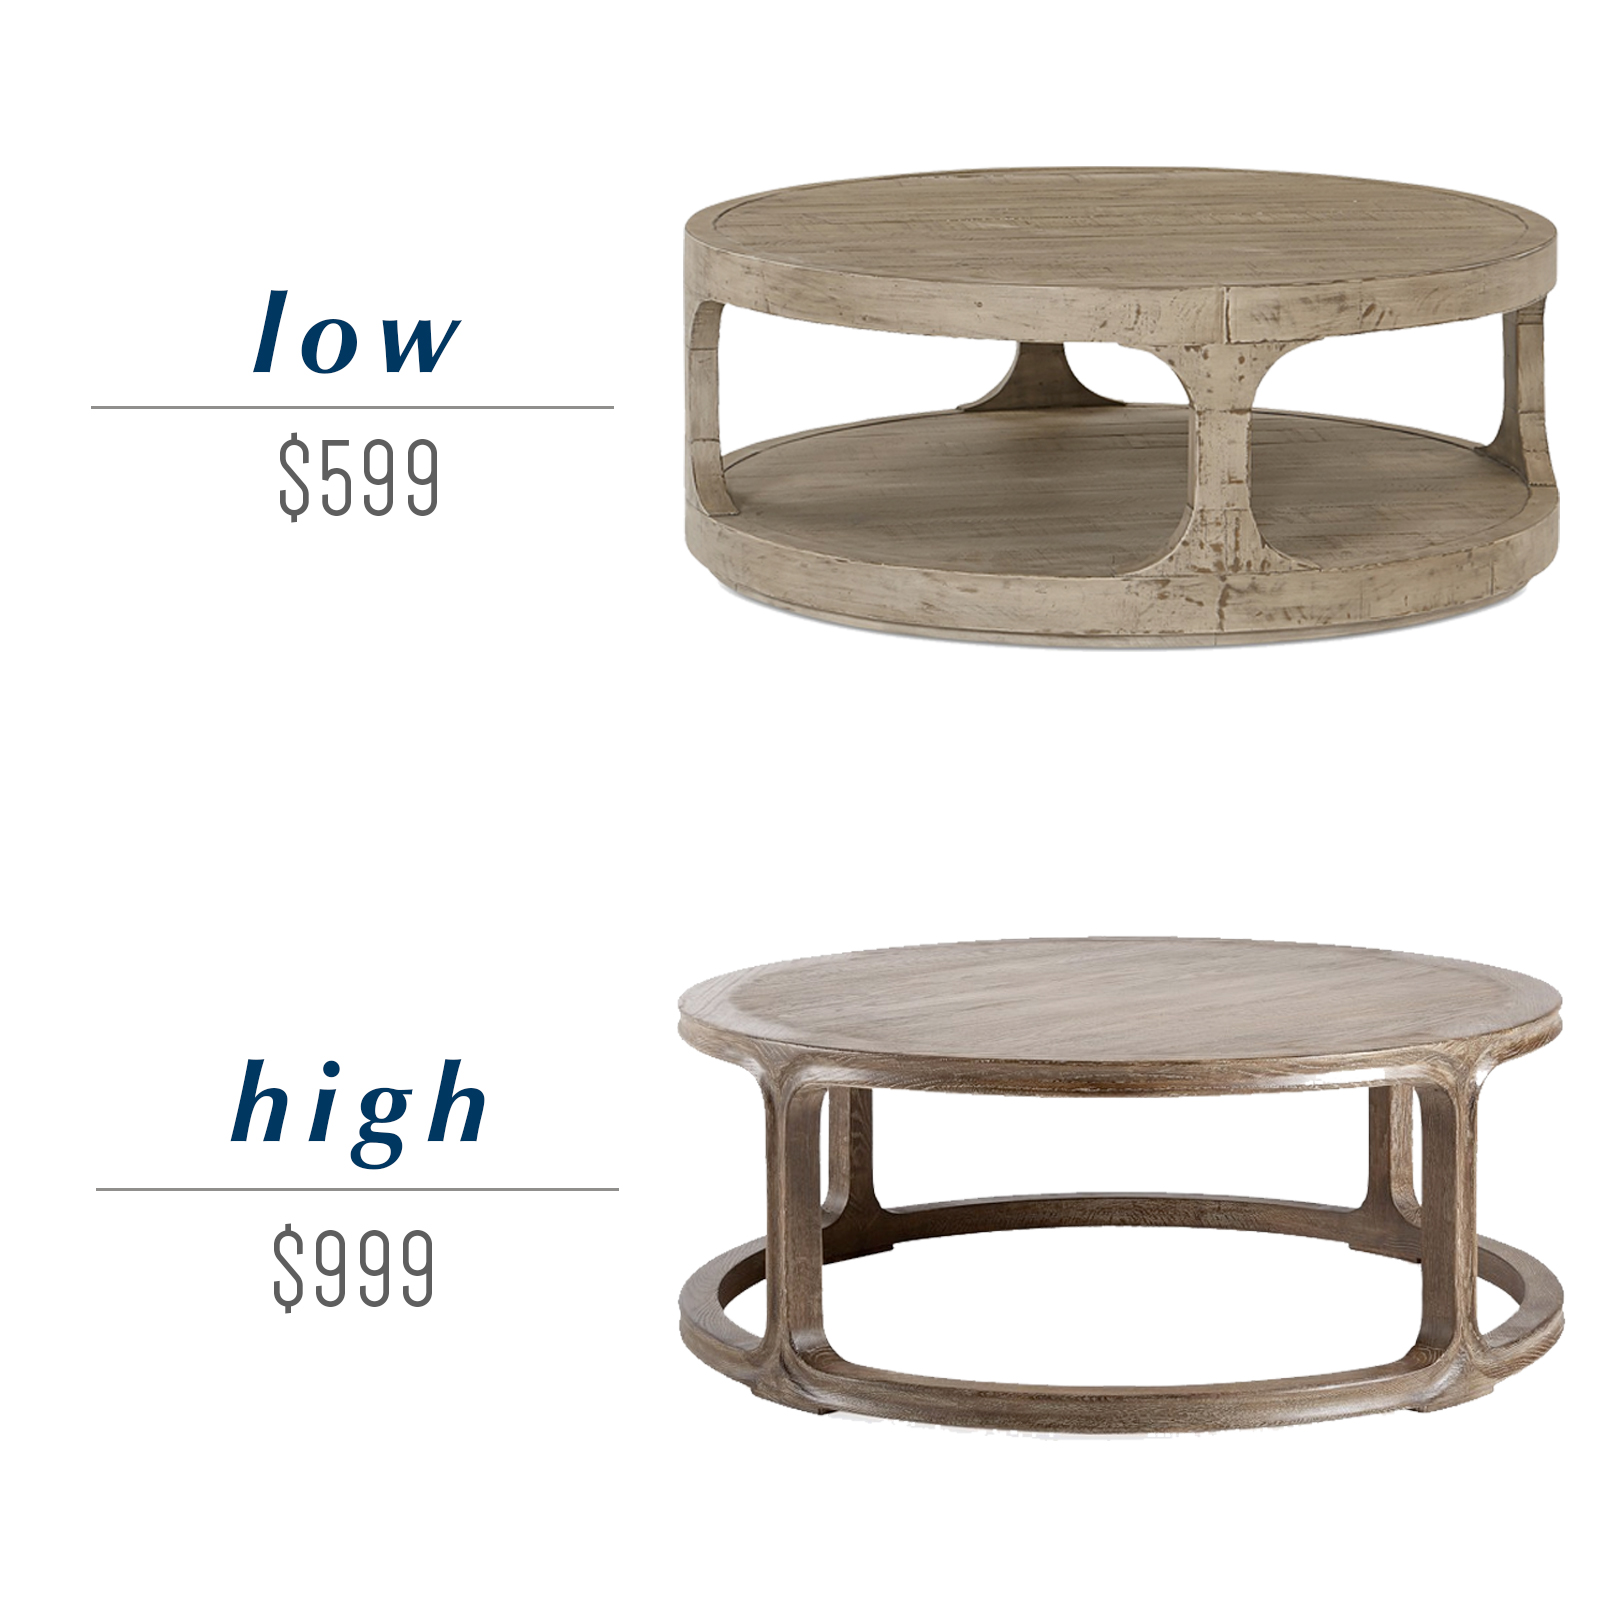 Get the look for less or decide to splurge! Come see the budget-friendly and spend-worthy pieces of furniture in this blog post including the high/low sources for this rustic round wood coffee table.